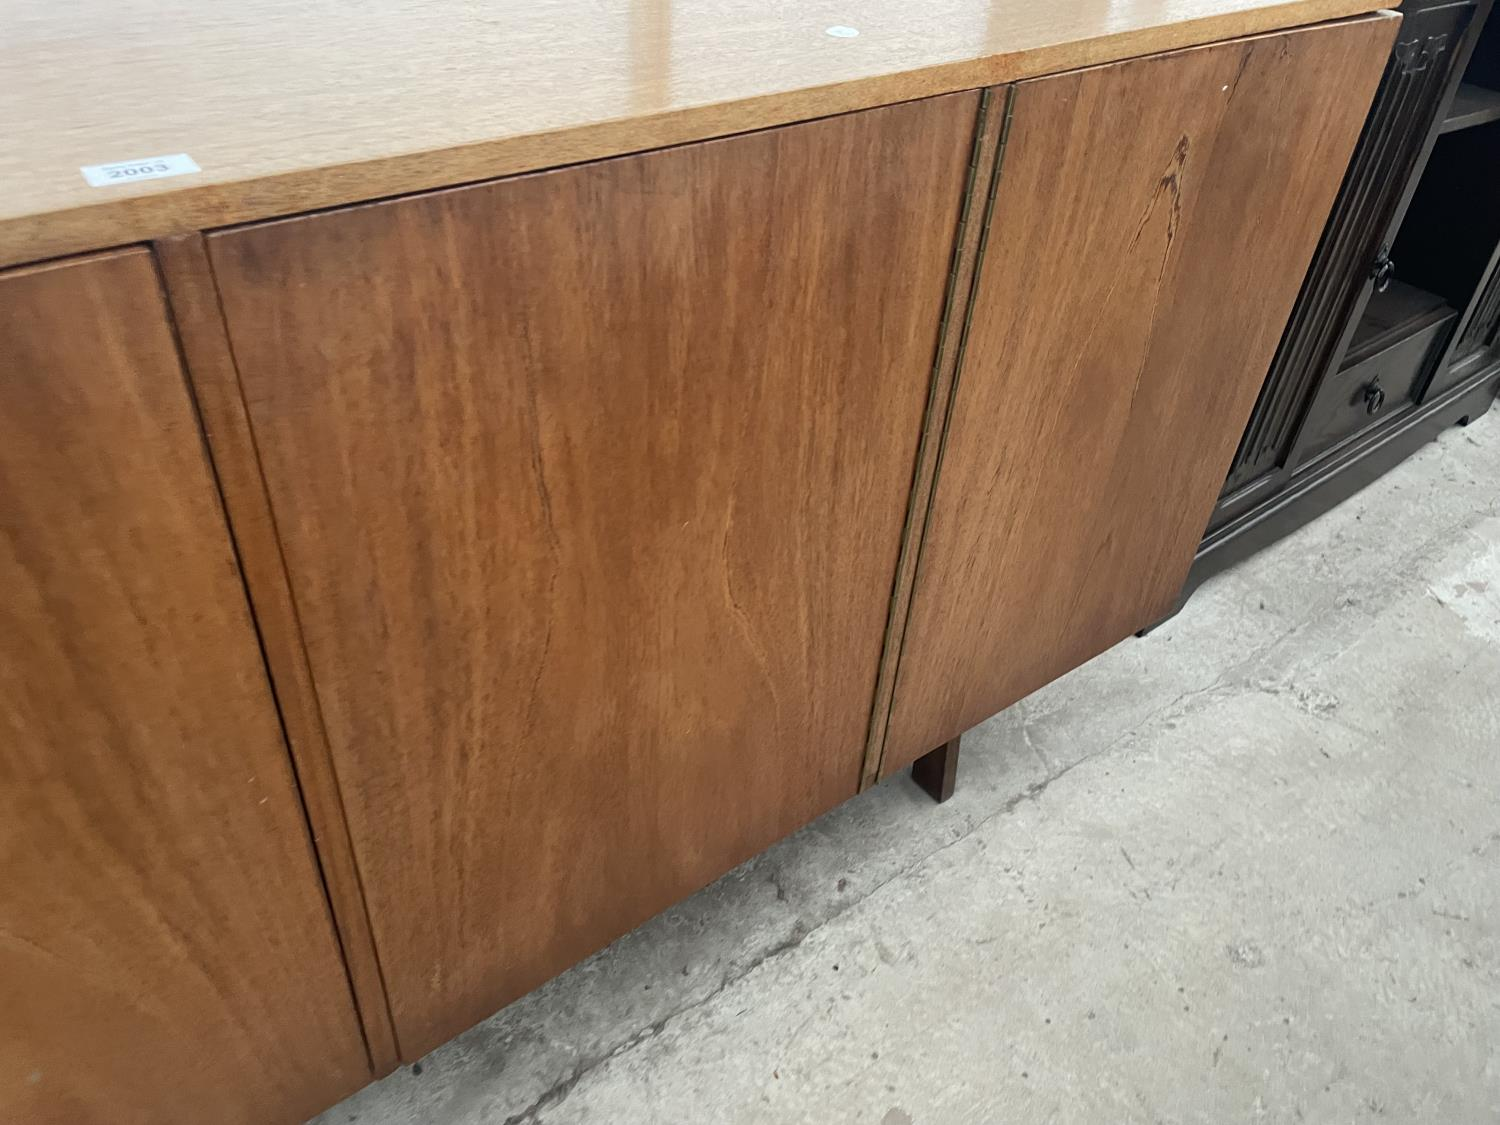 """A RETRO TEAK SIDEBOARD WITH FOUR PUSH RELEASE DOORS, 72"""" WIDE - Image 5 of 8"""